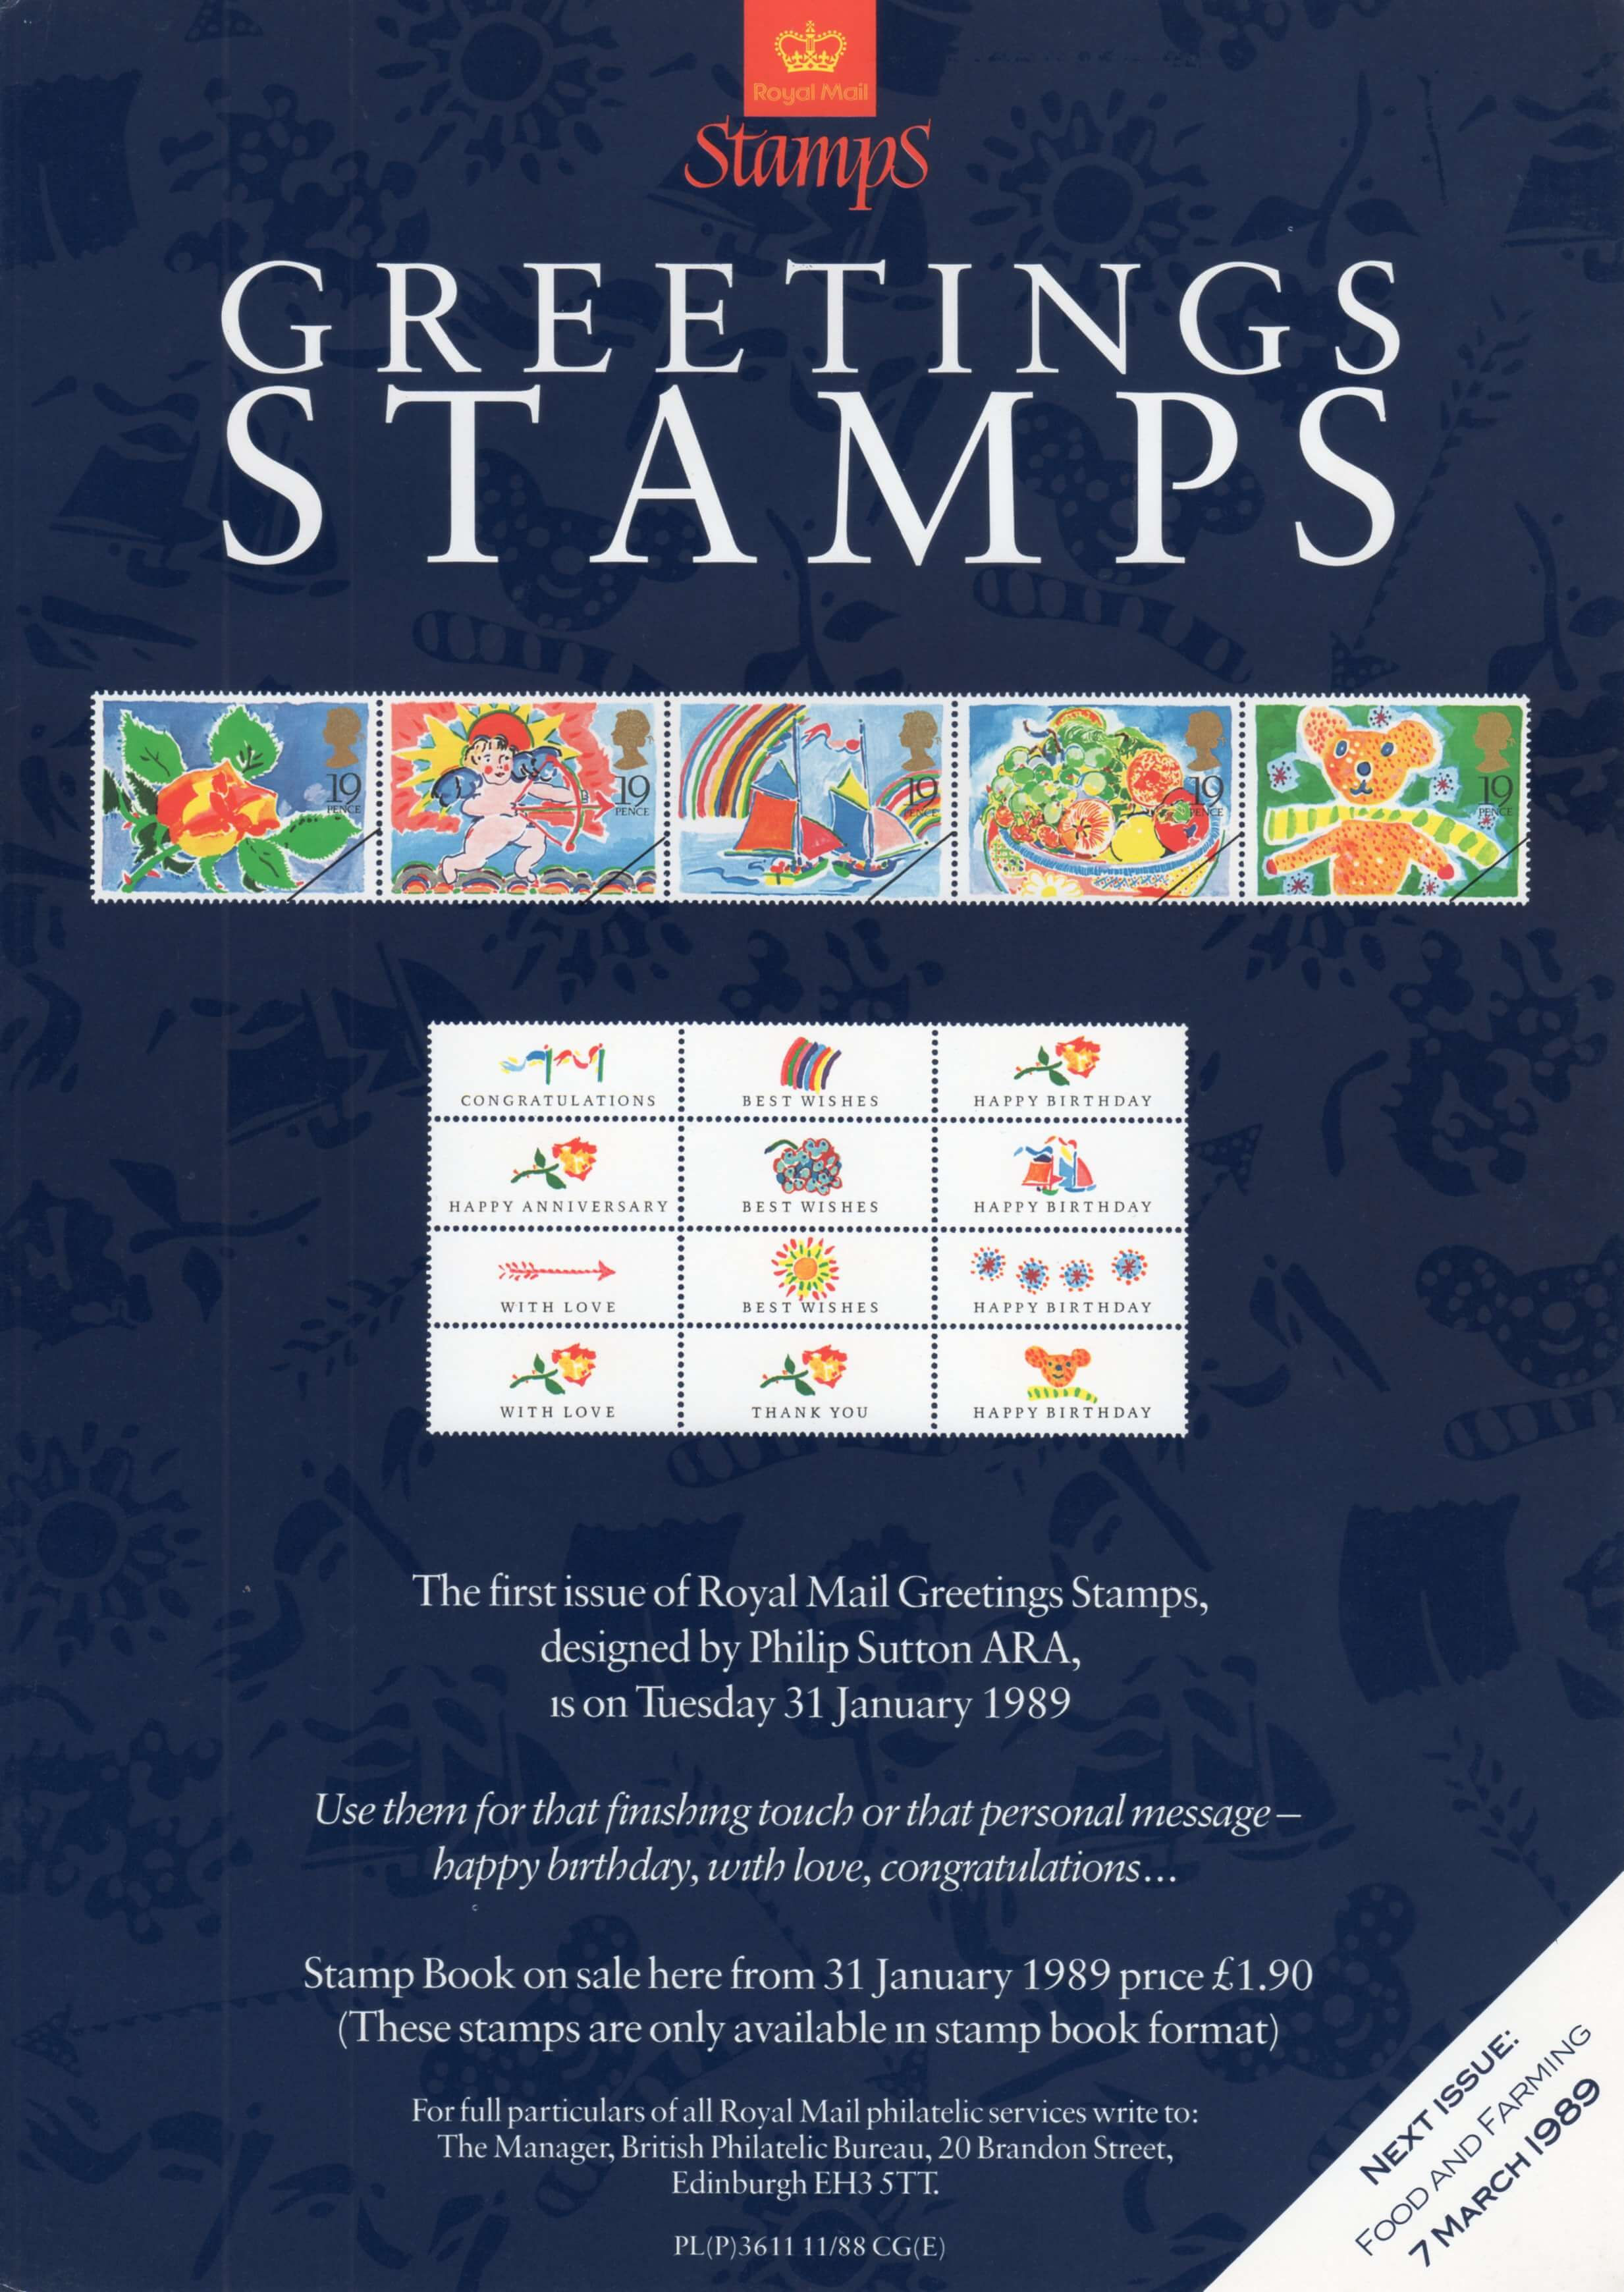 Greetings booklet stamps 1989 collect gb stamps poster m4hsunfo